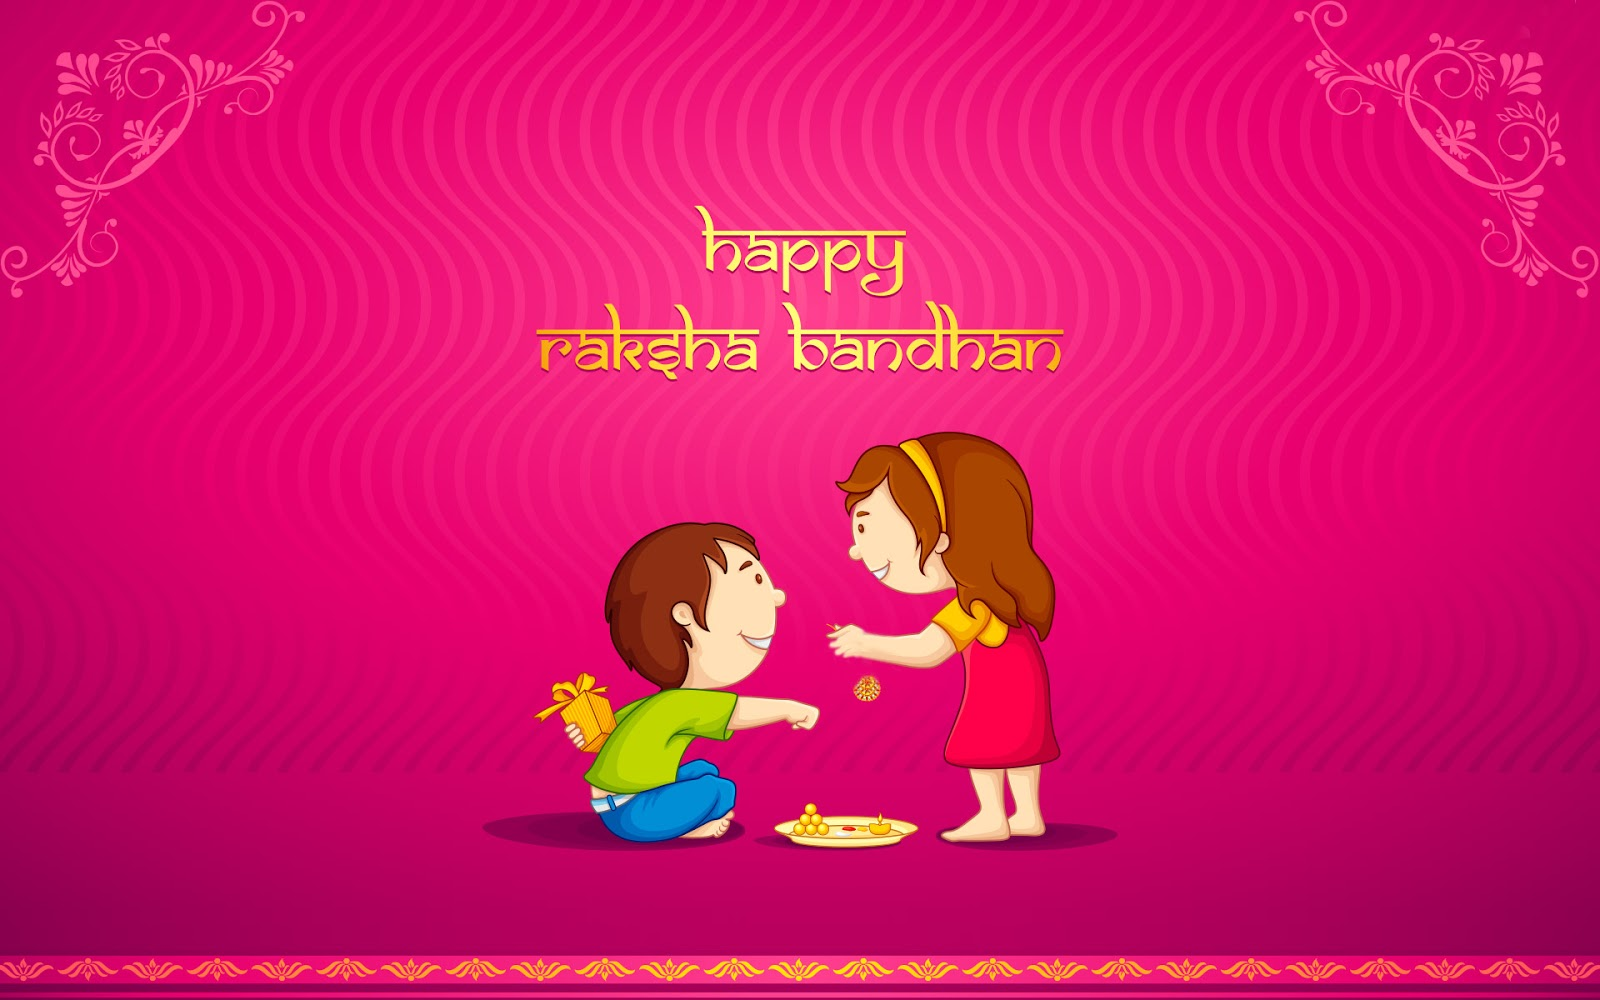 happy raksha bandhan images pictures photos  happy raksha bandhan images for sister